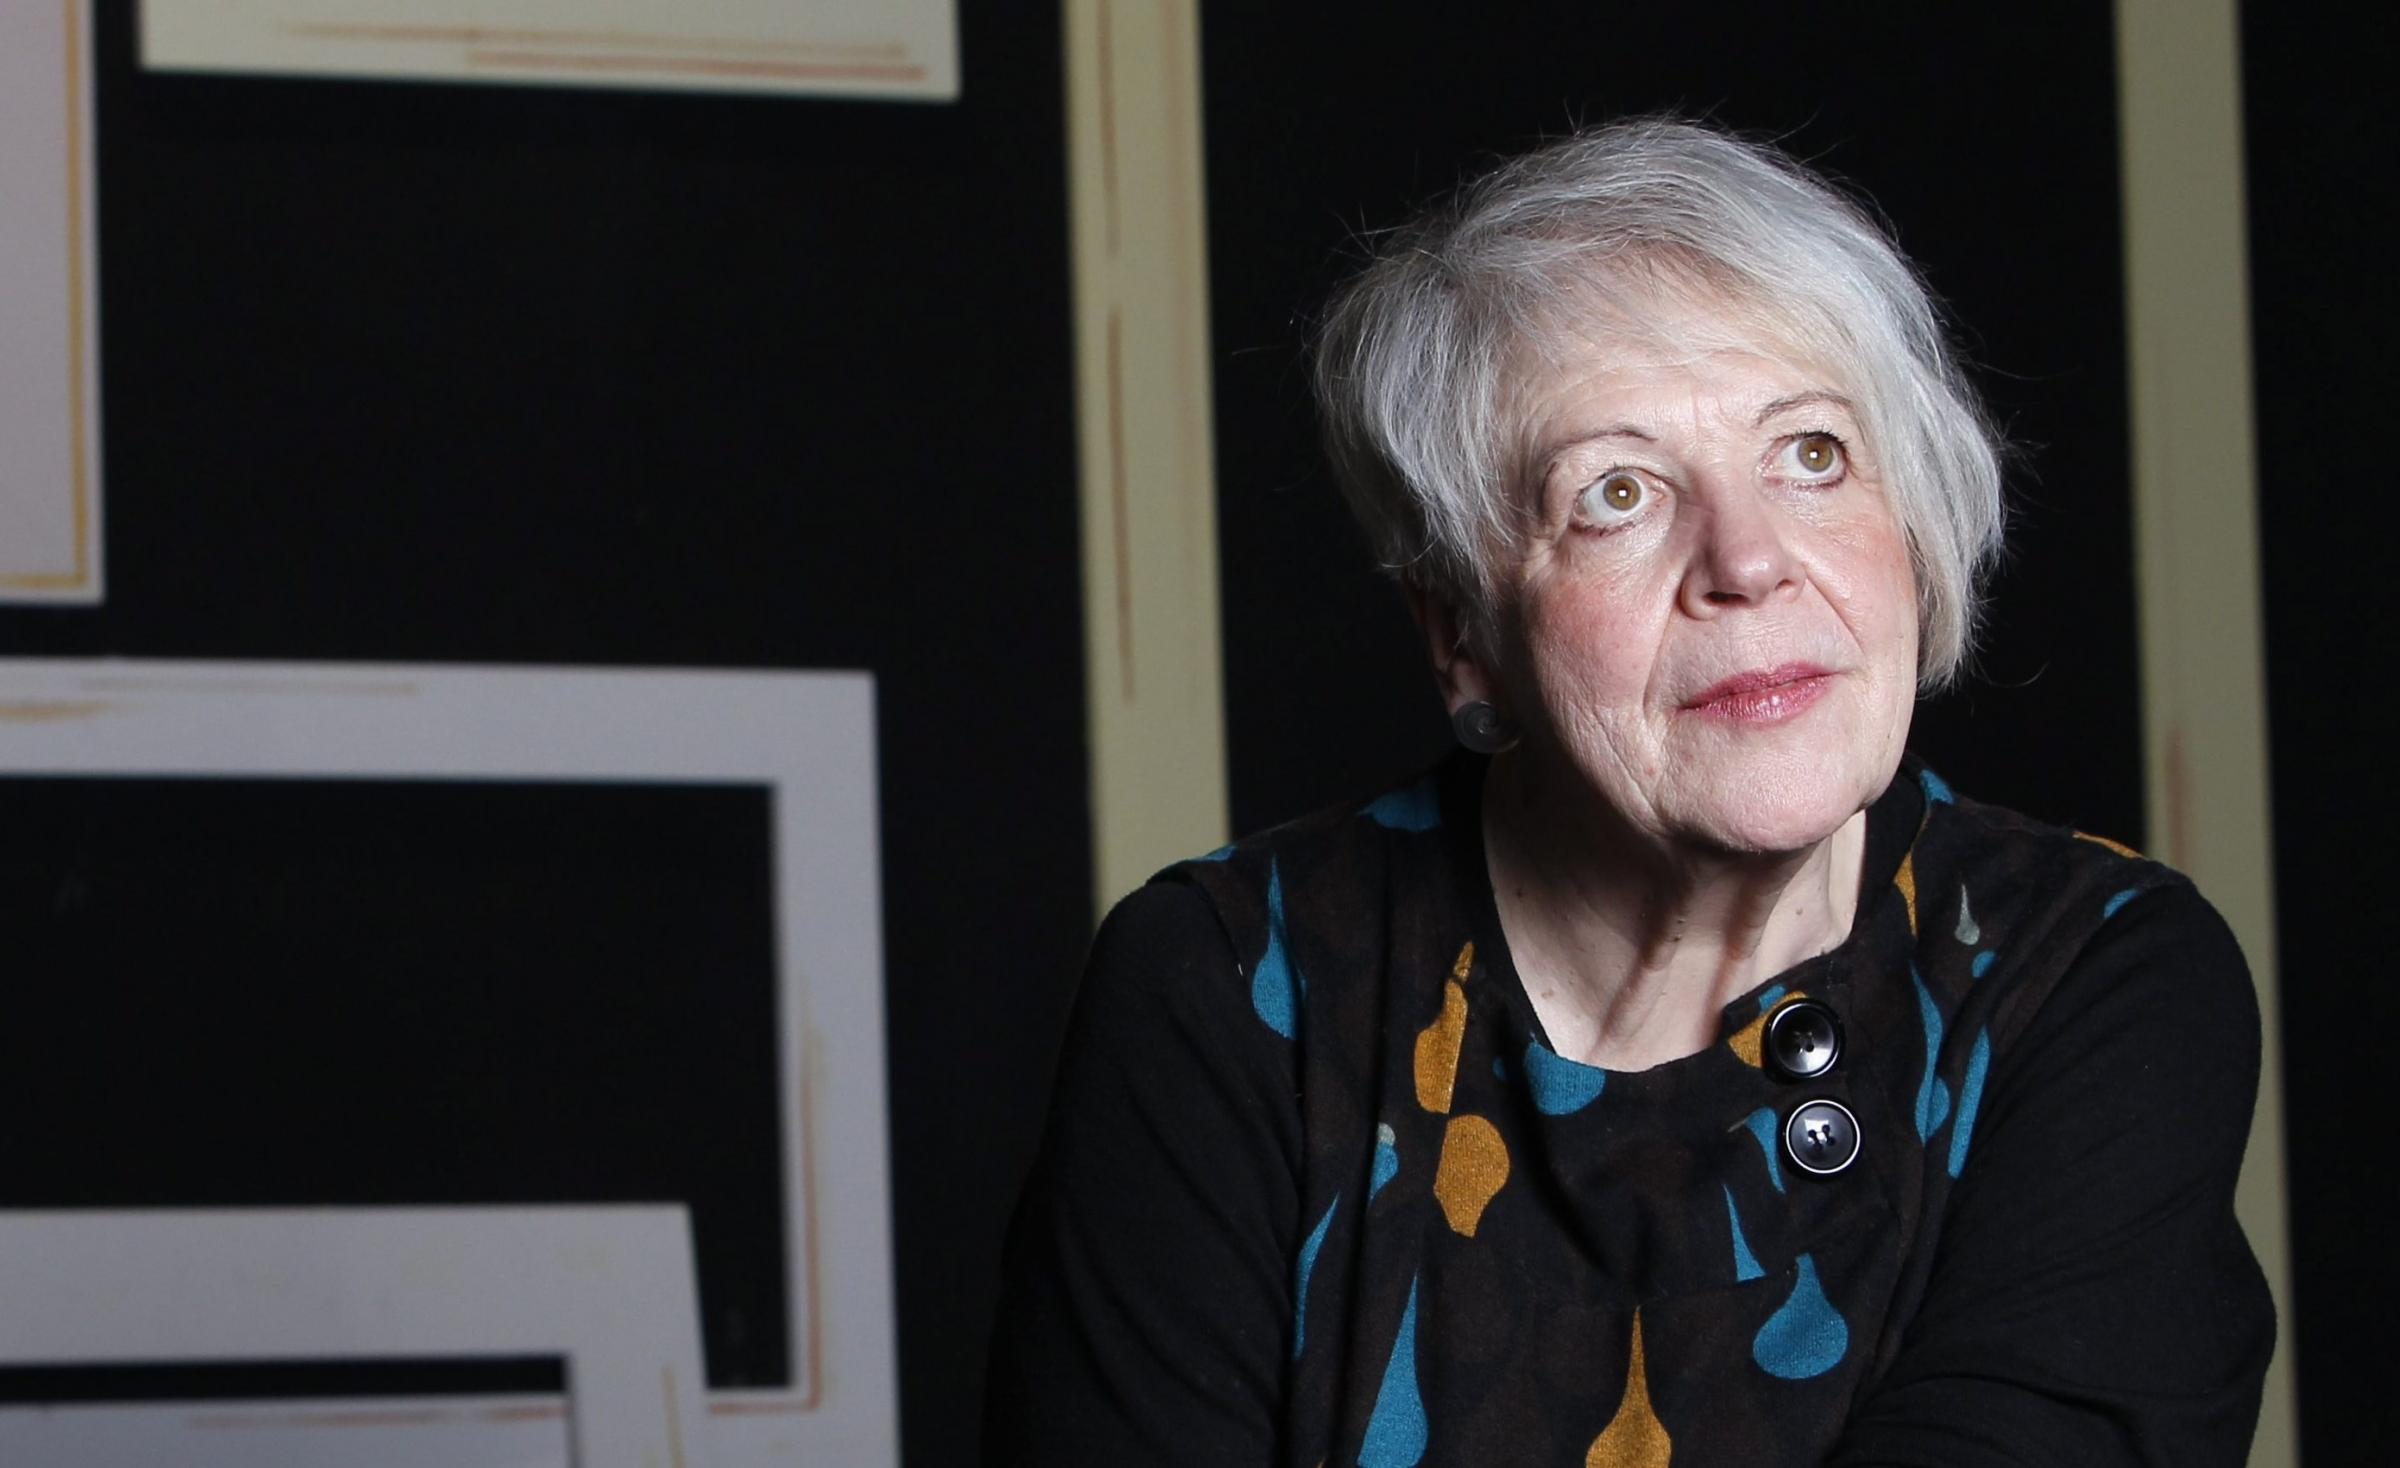 Liz Lochhead said that Scotland's national pastime is nostalgia